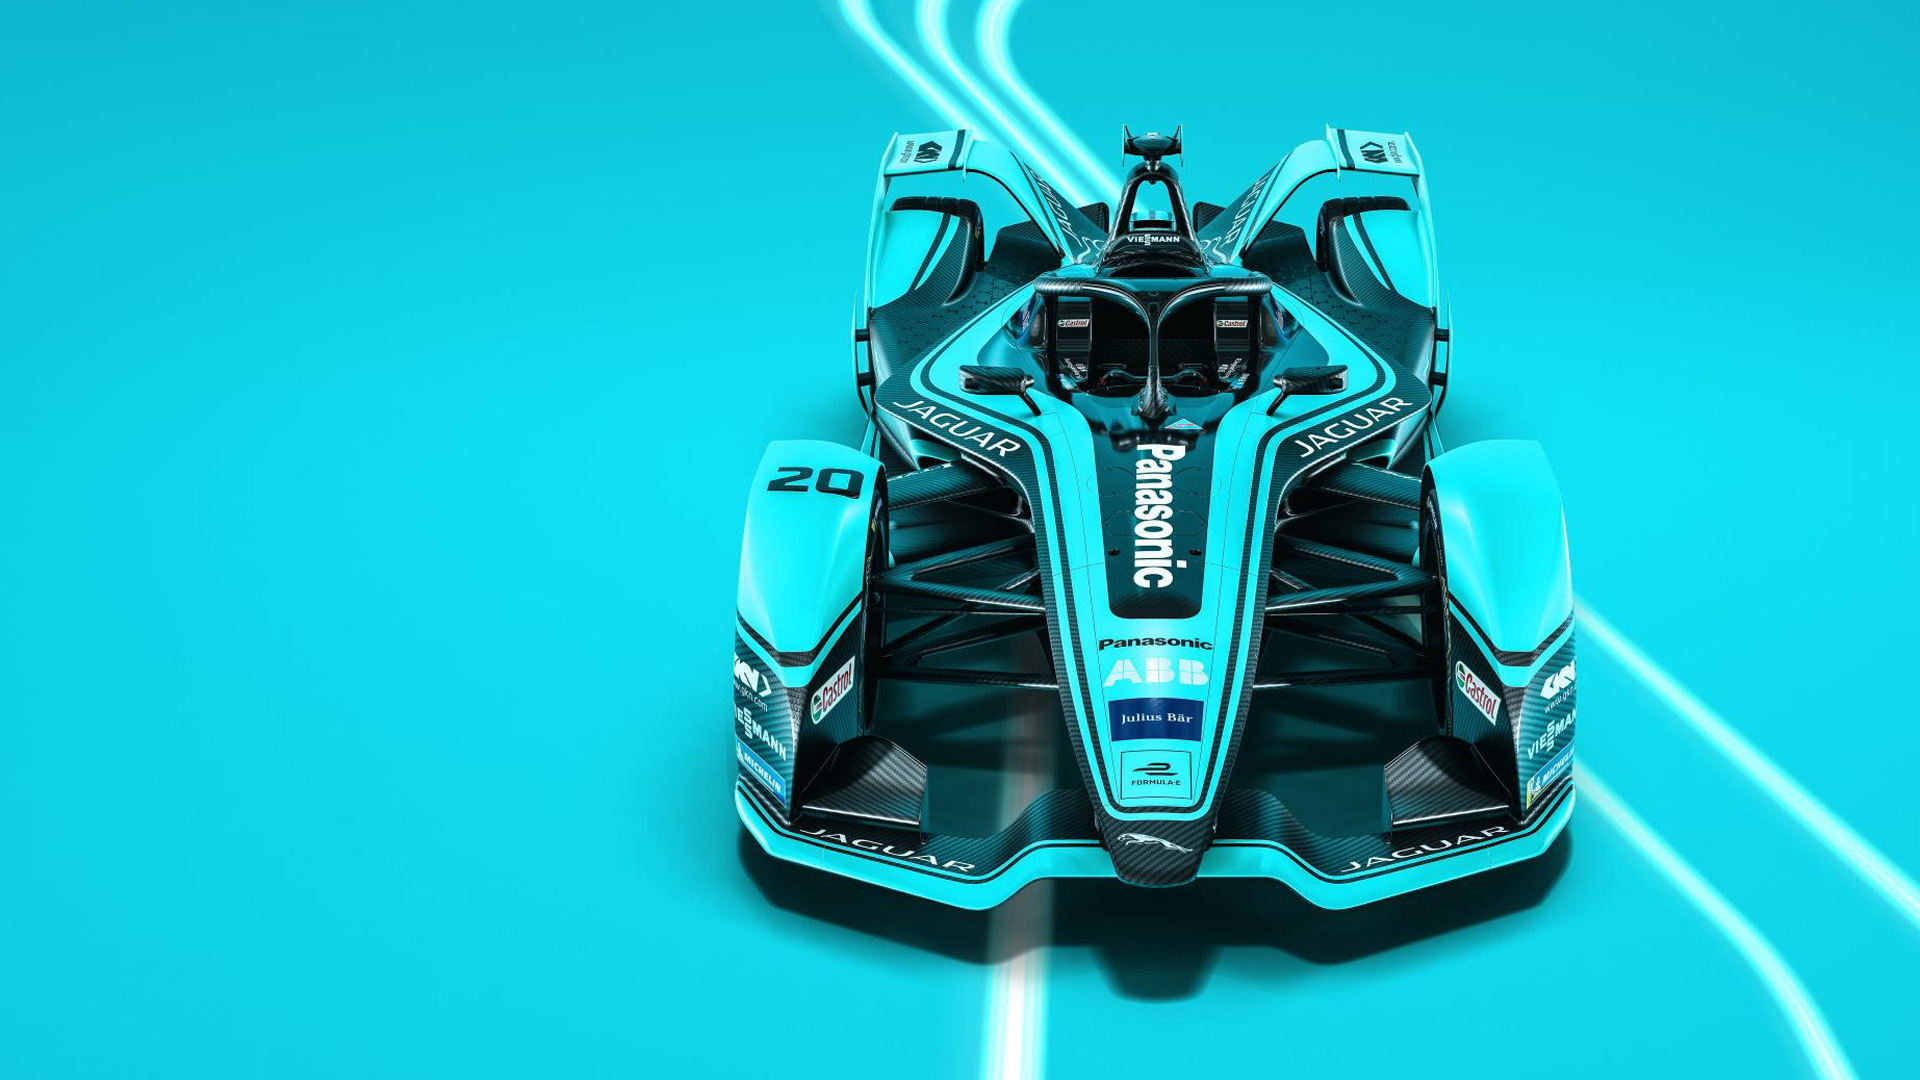 2019/2020 Jaguar I-Type 4 Formula E race car